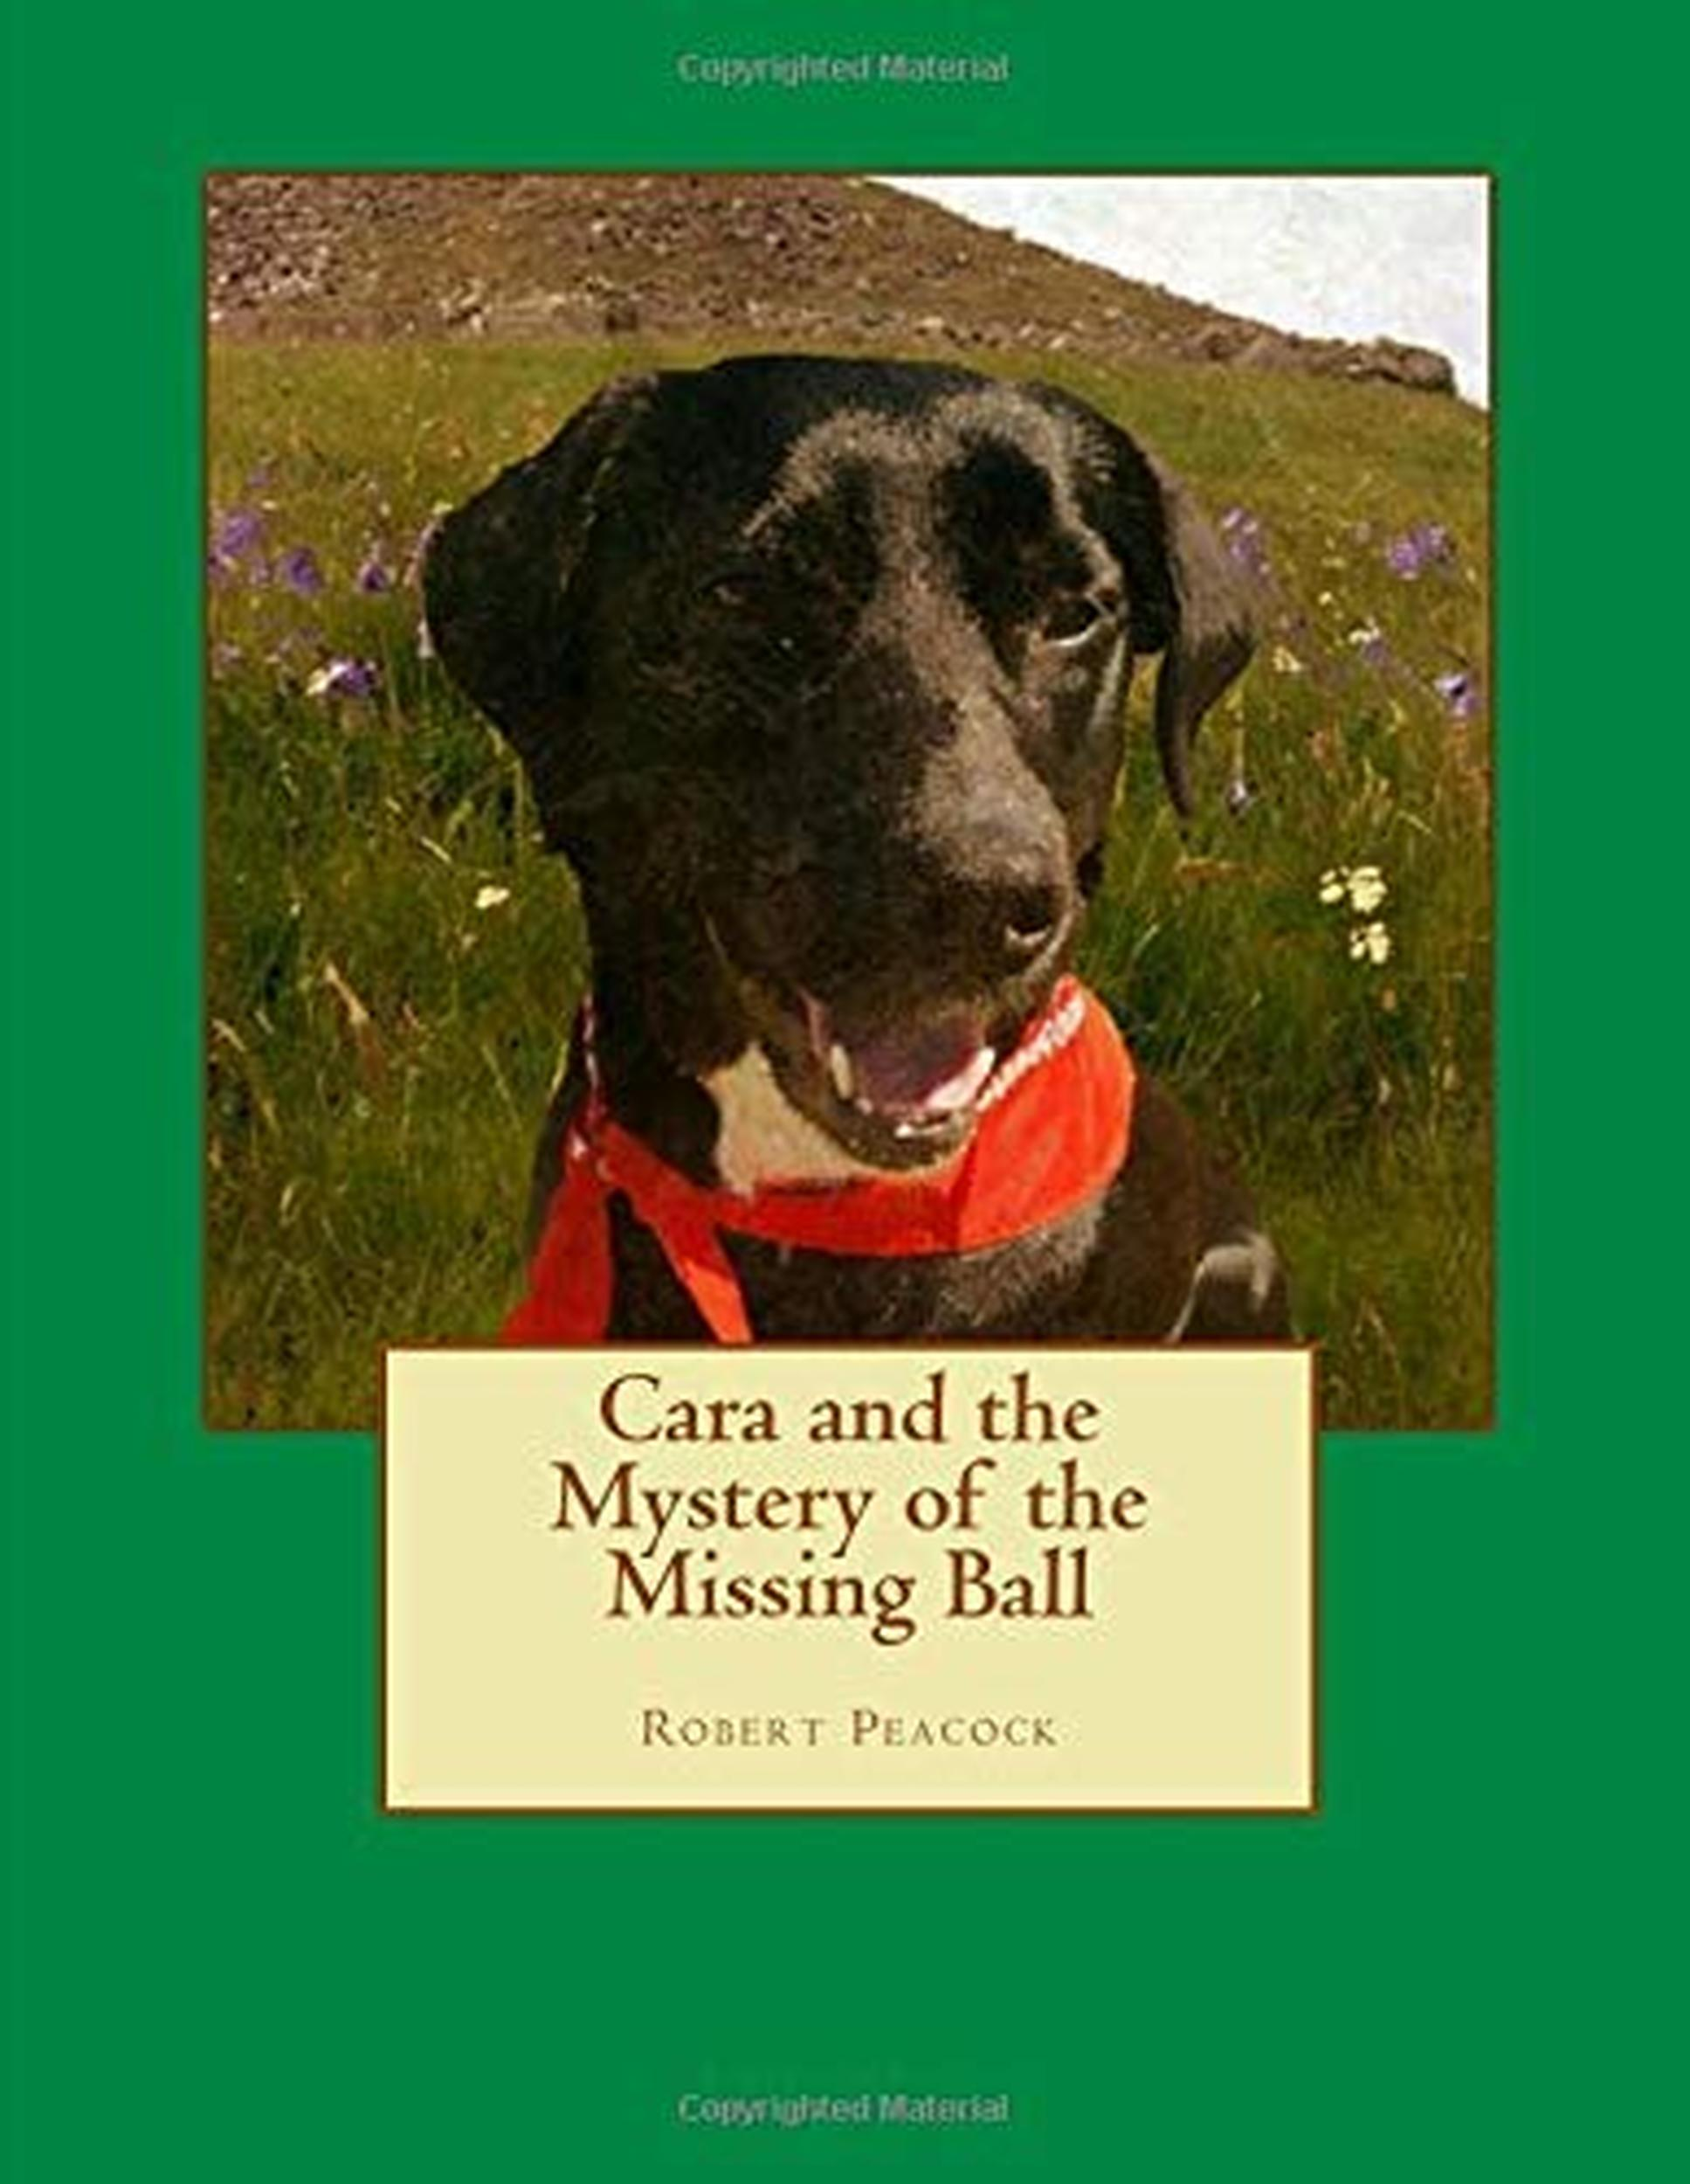 Cara and the Mystery of the Missing